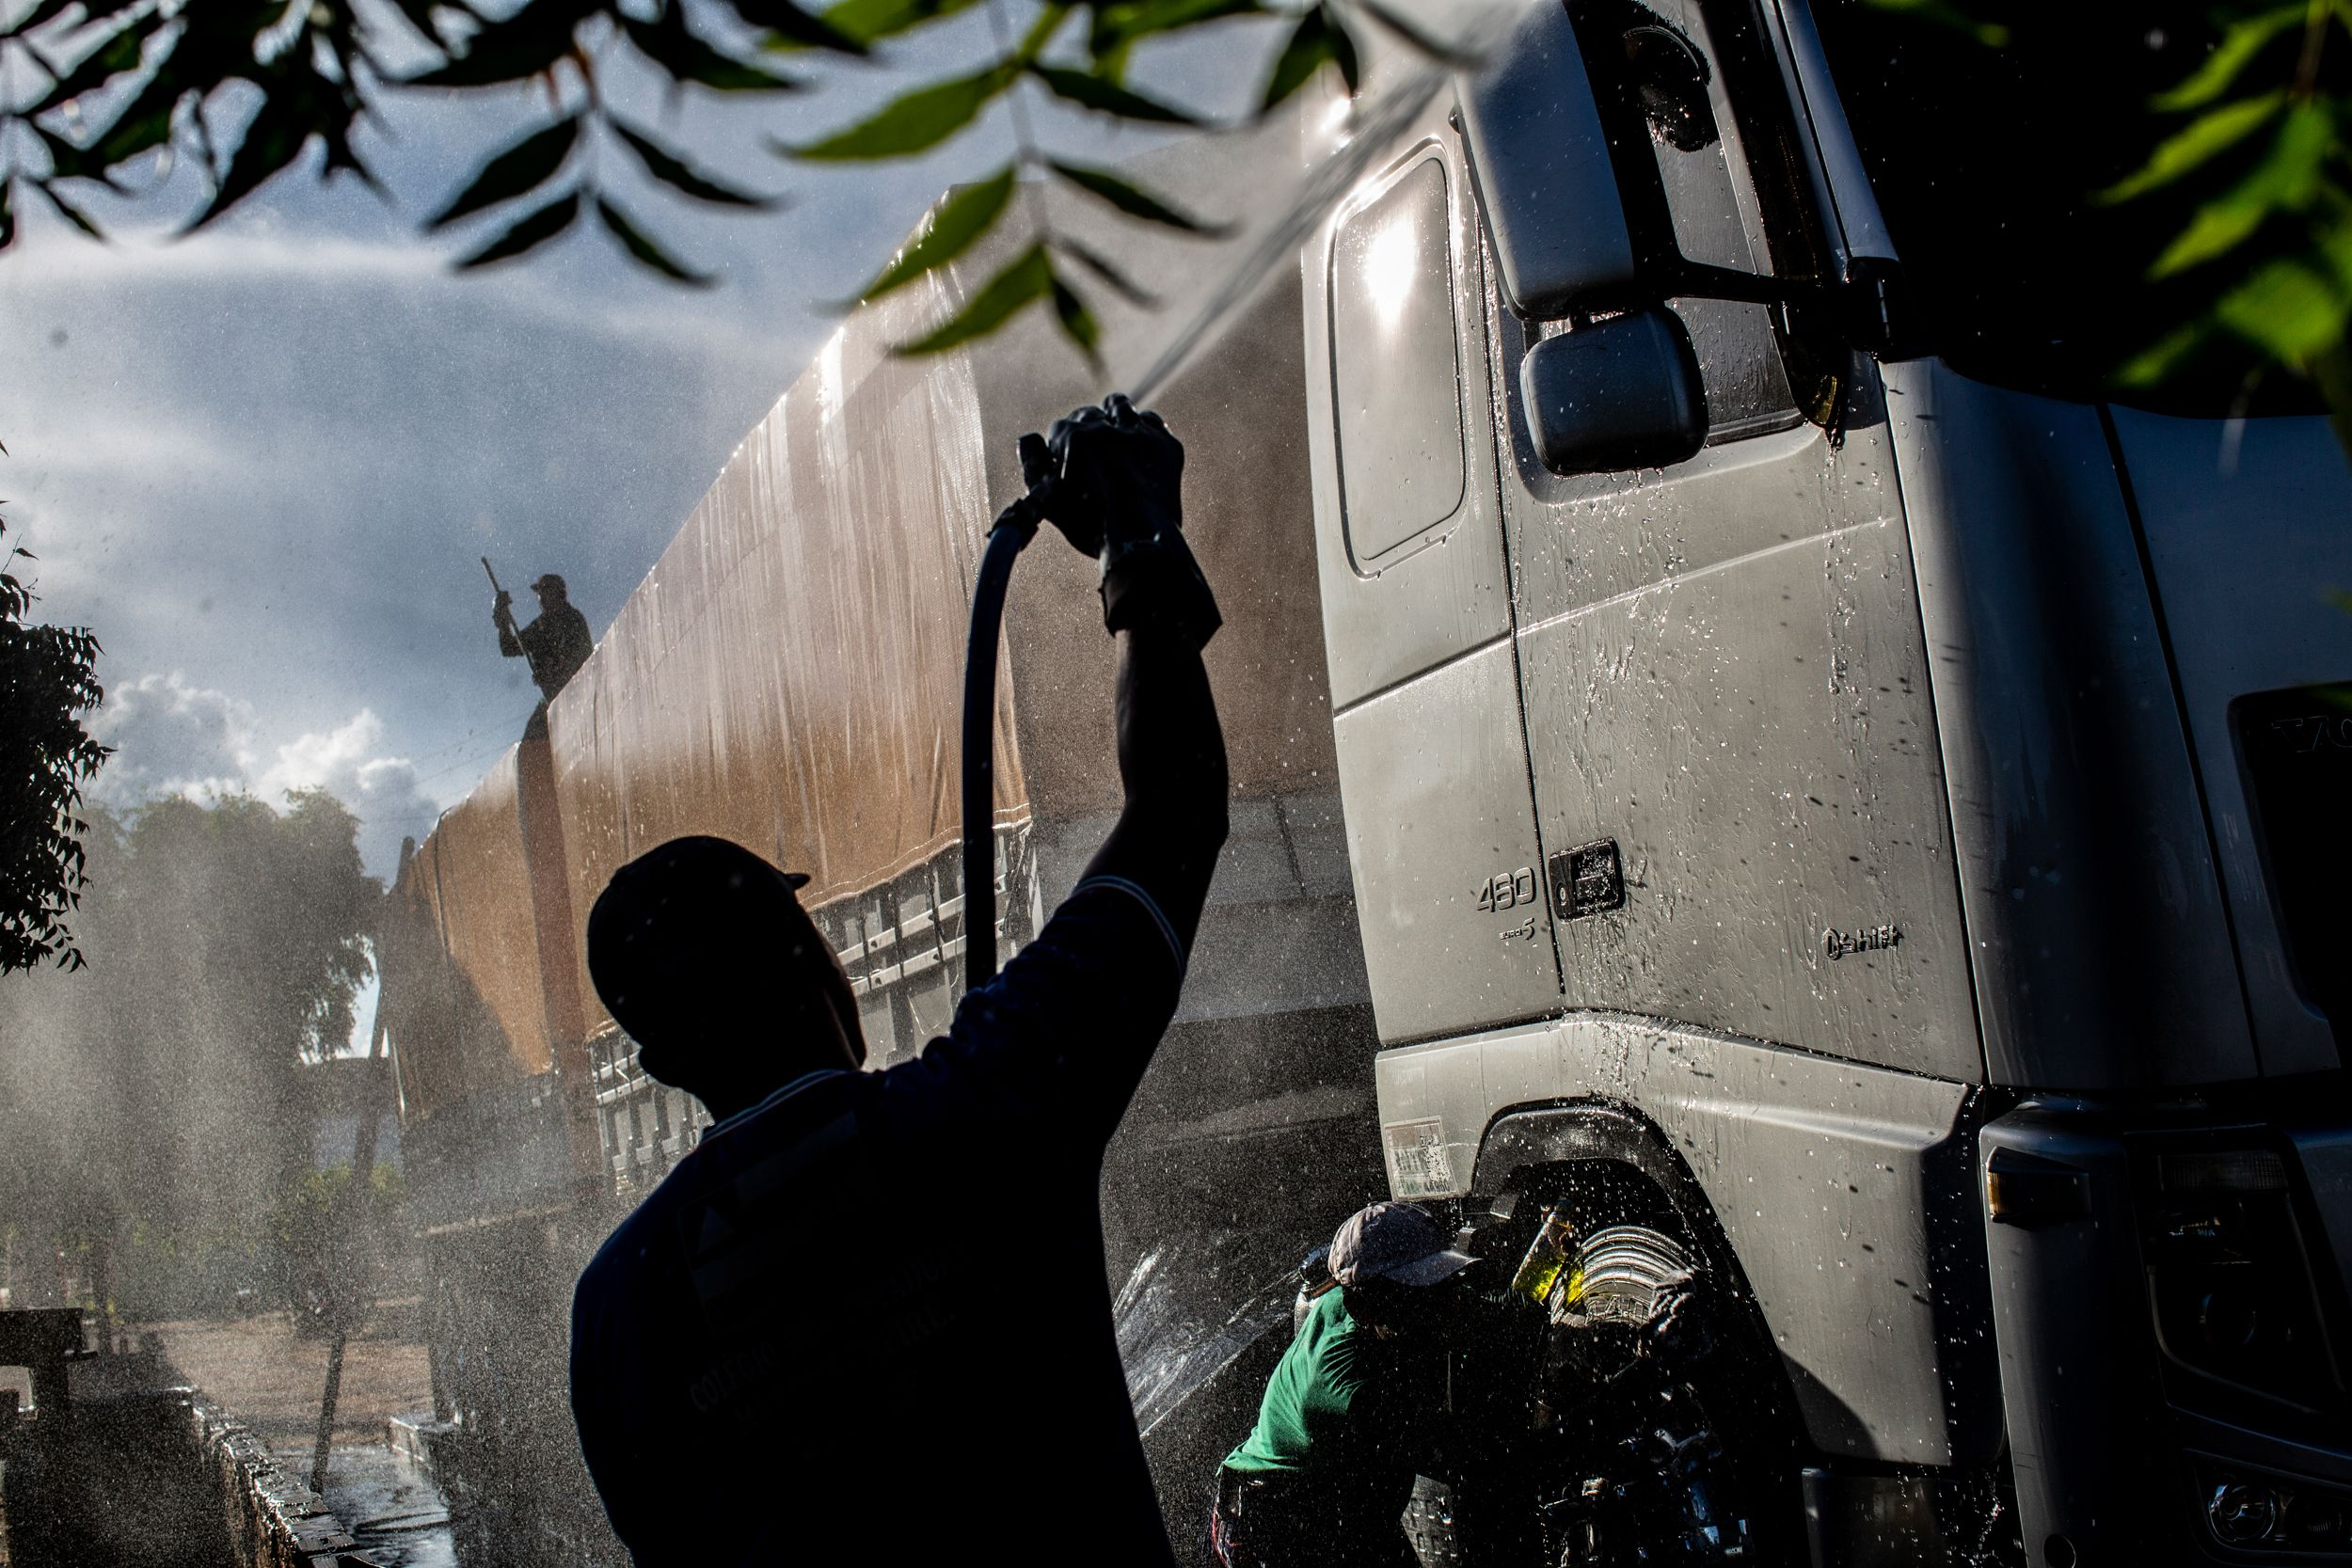 Workers clean a soy truck near Barreiros in Bahia.